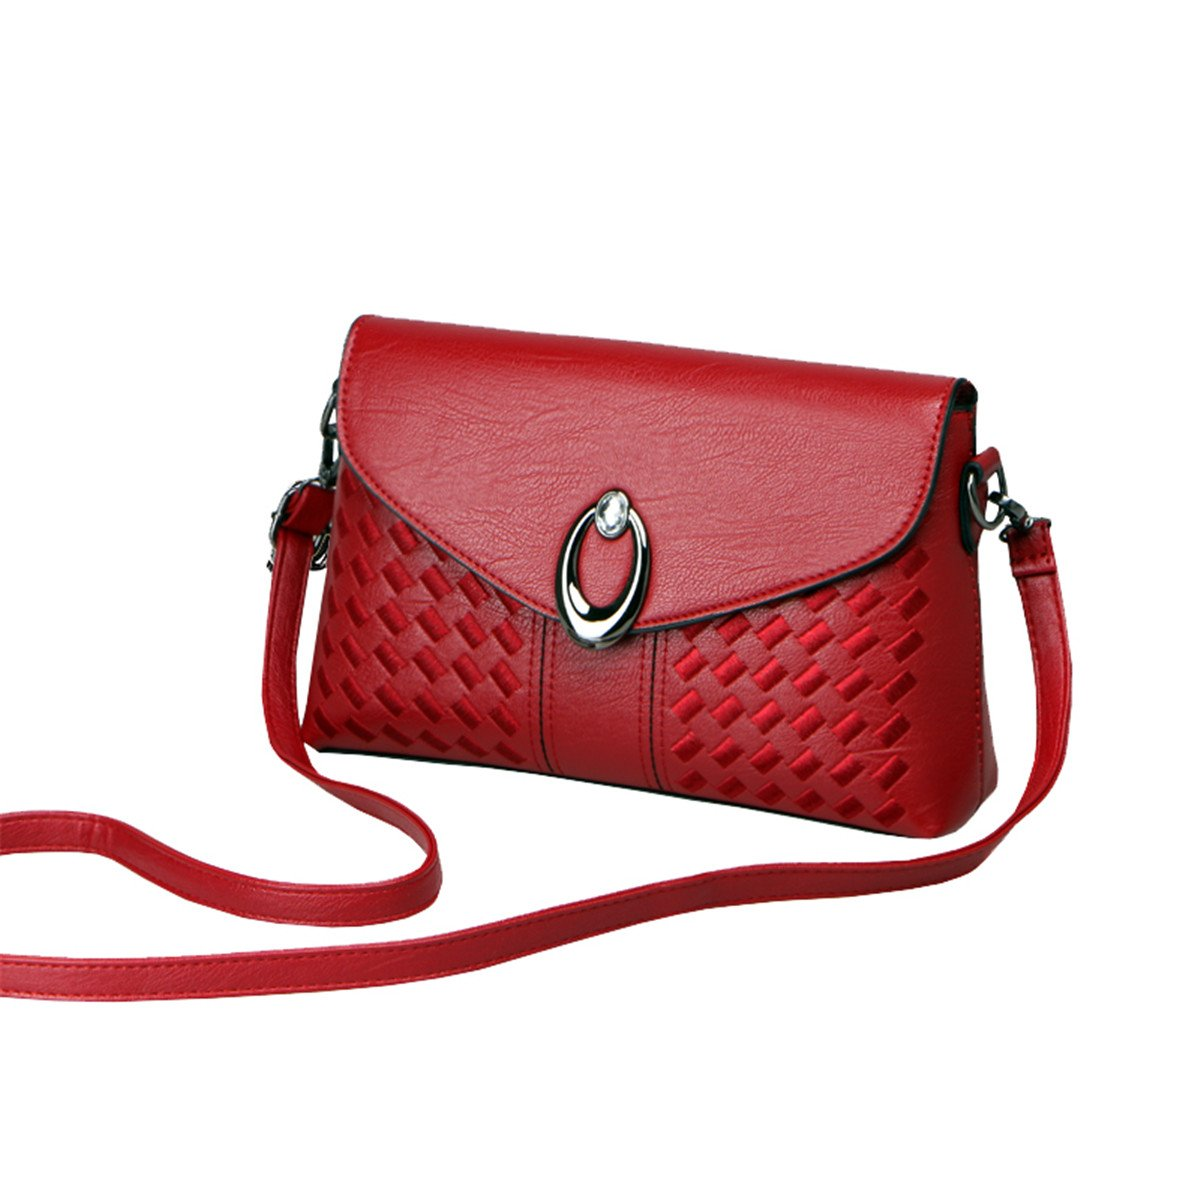 HFmorning Pure Color Shoulder Bags Simple Cross Body Bags Retro Handbags PU Leather Satchel for Women